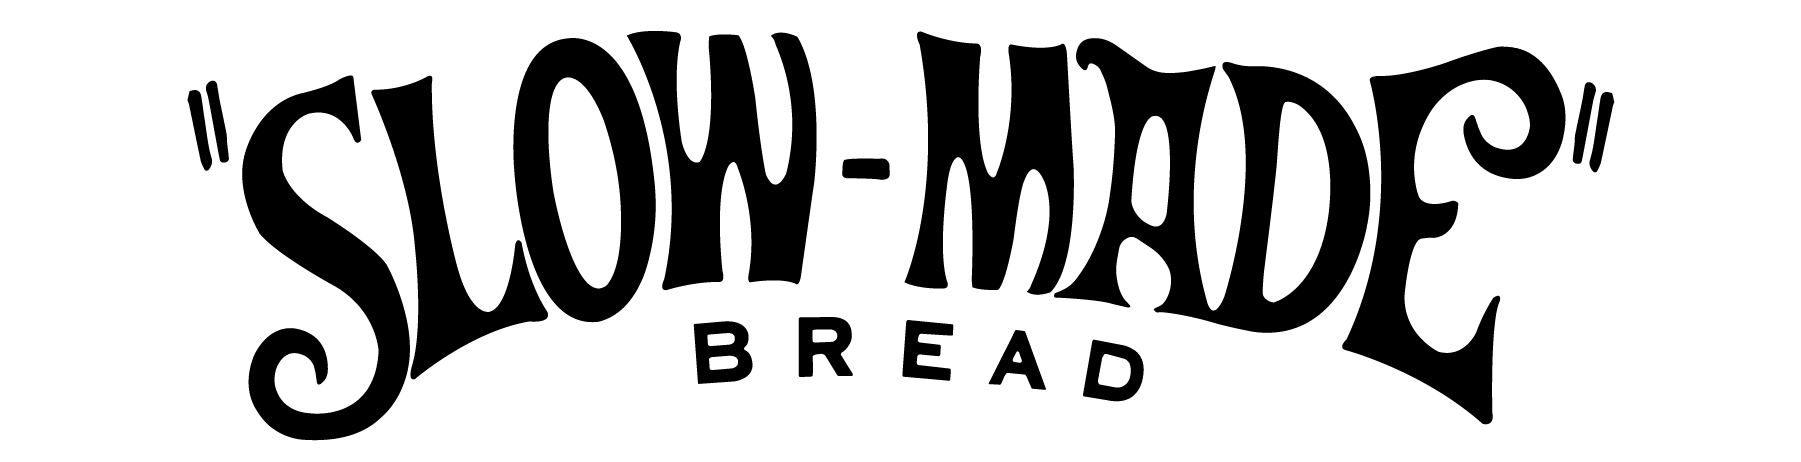 slowmade bread-03.png